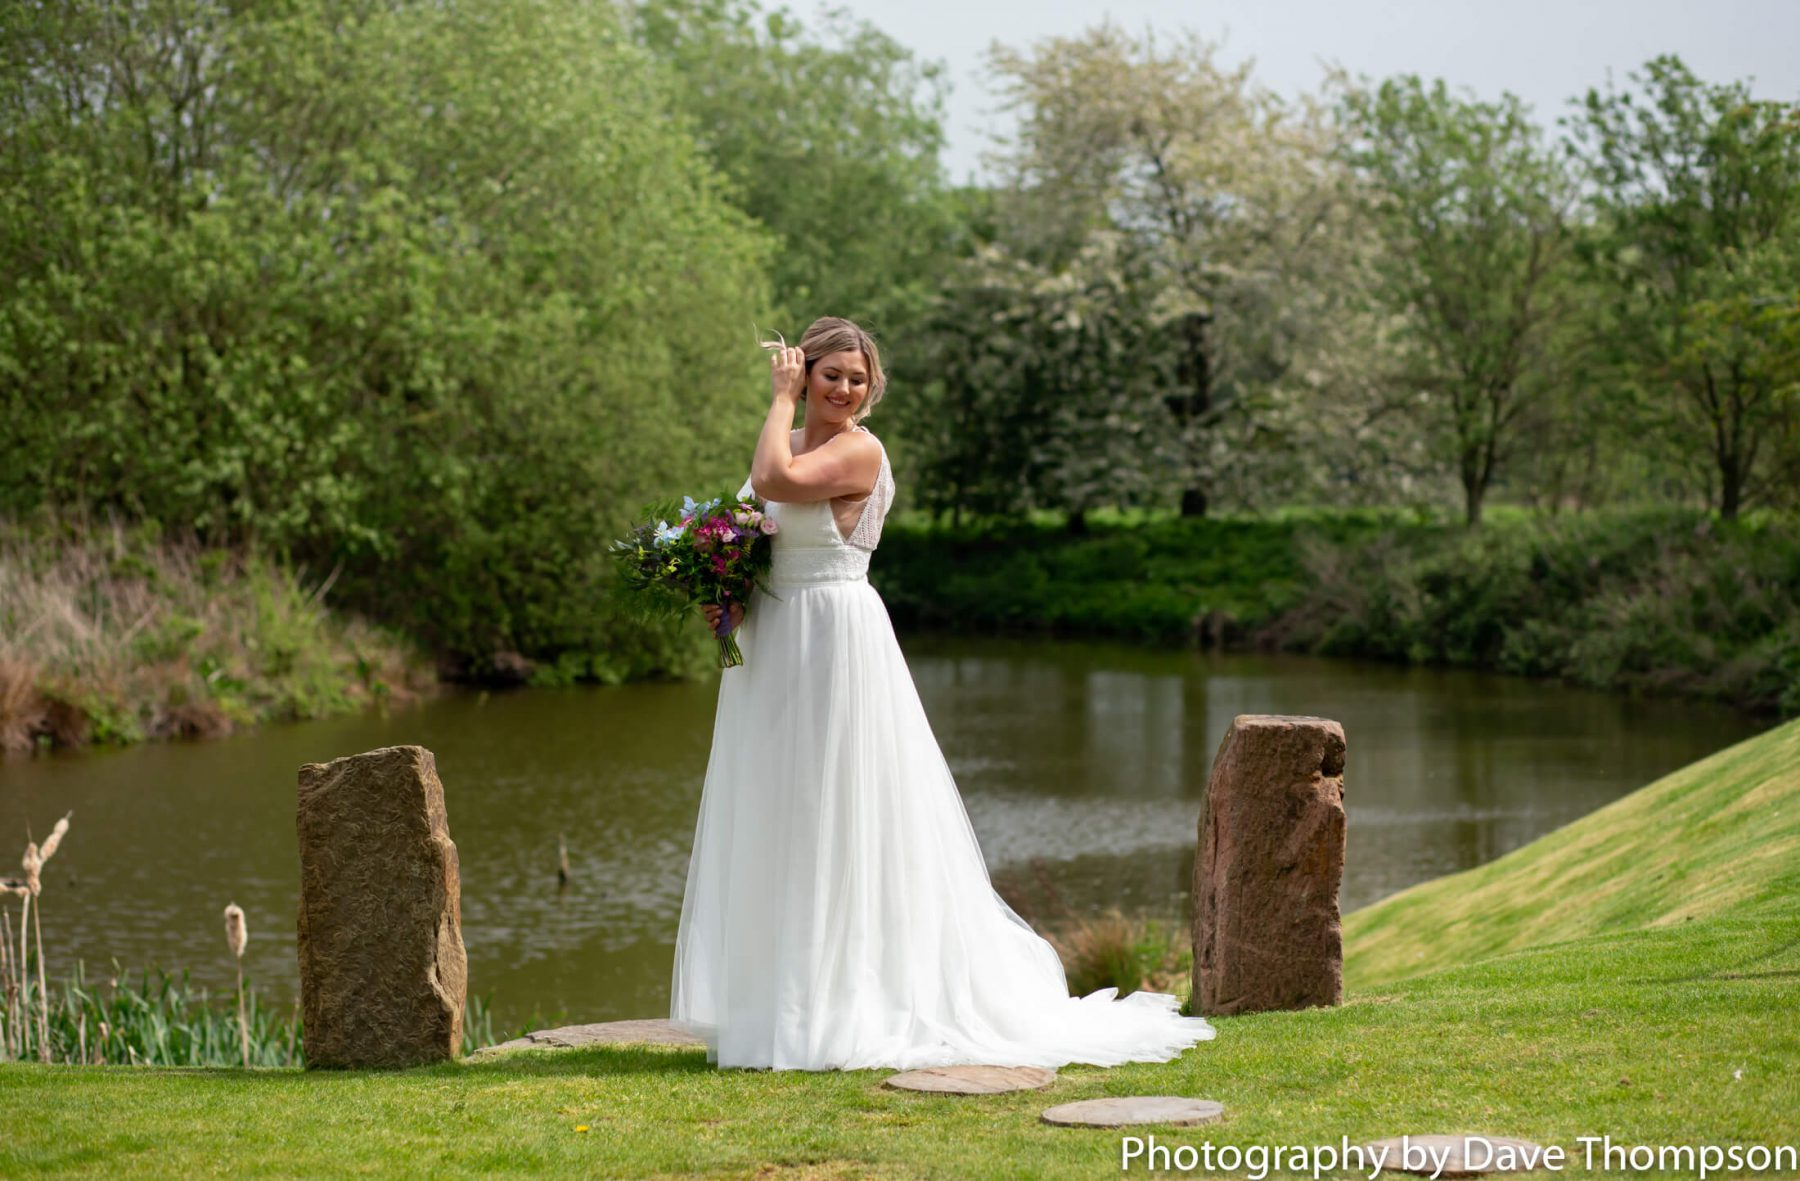 Bridal portrait by the lake at Alcumlow Barn wedding venue